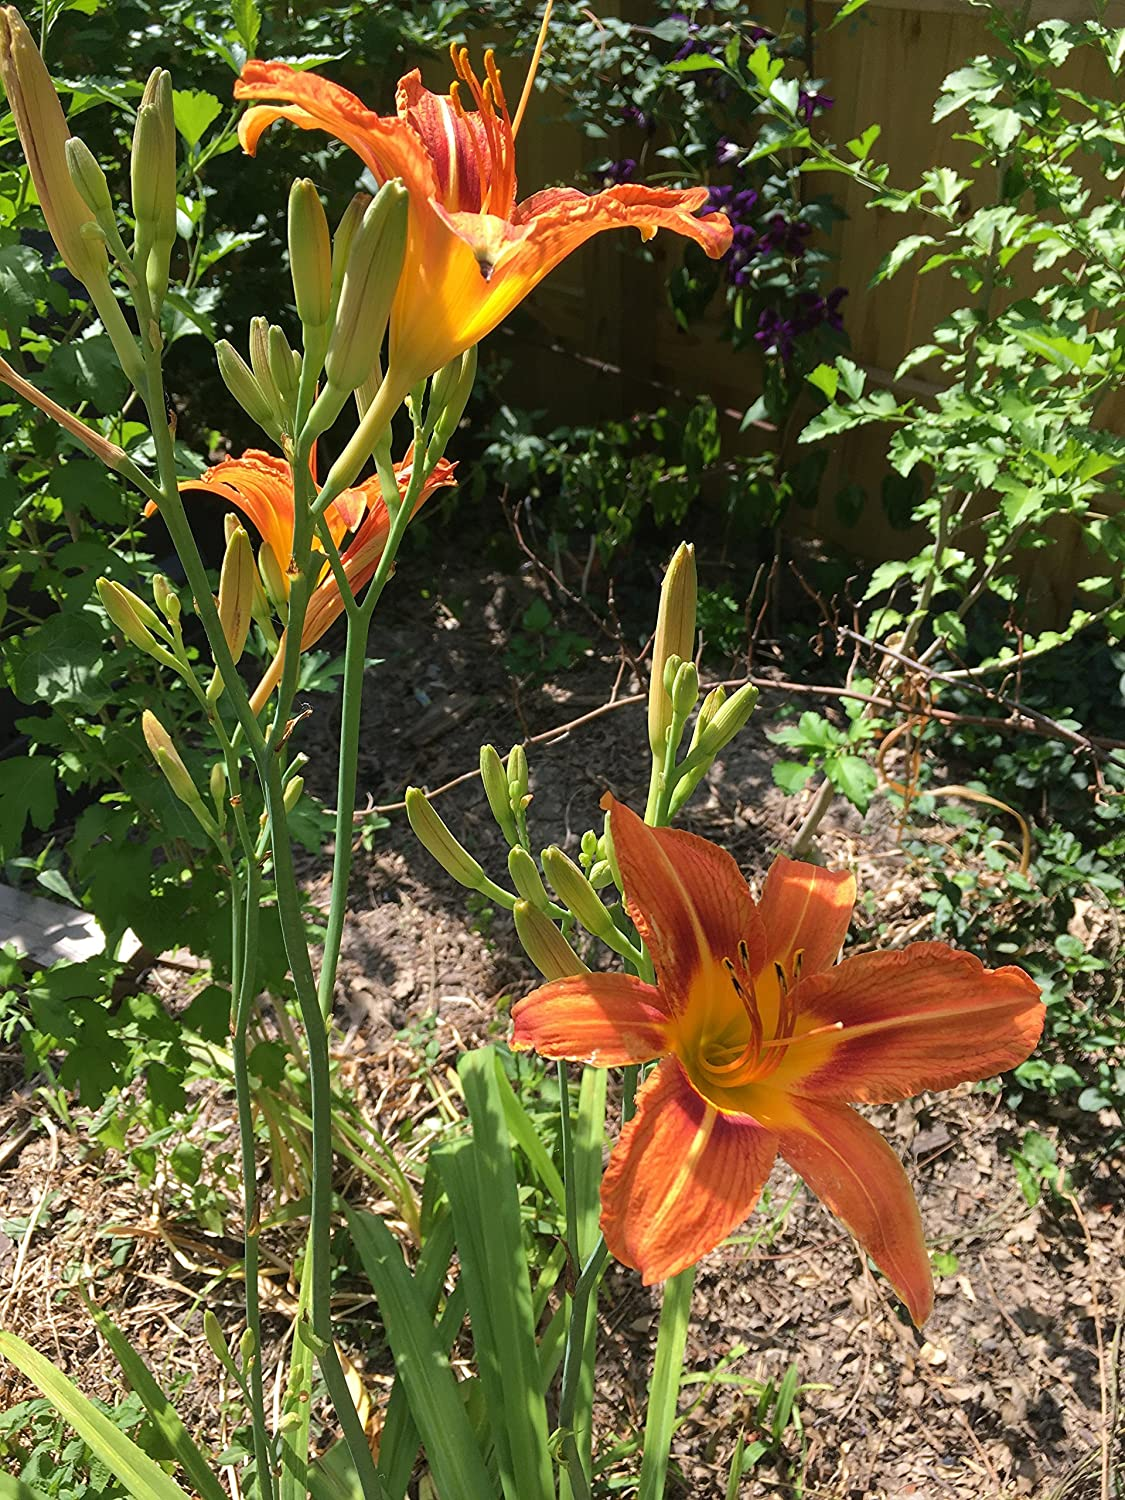 Ditch Lily Wild Daylily Bulbs 100 Root Systems Orange Daylily Bulbs